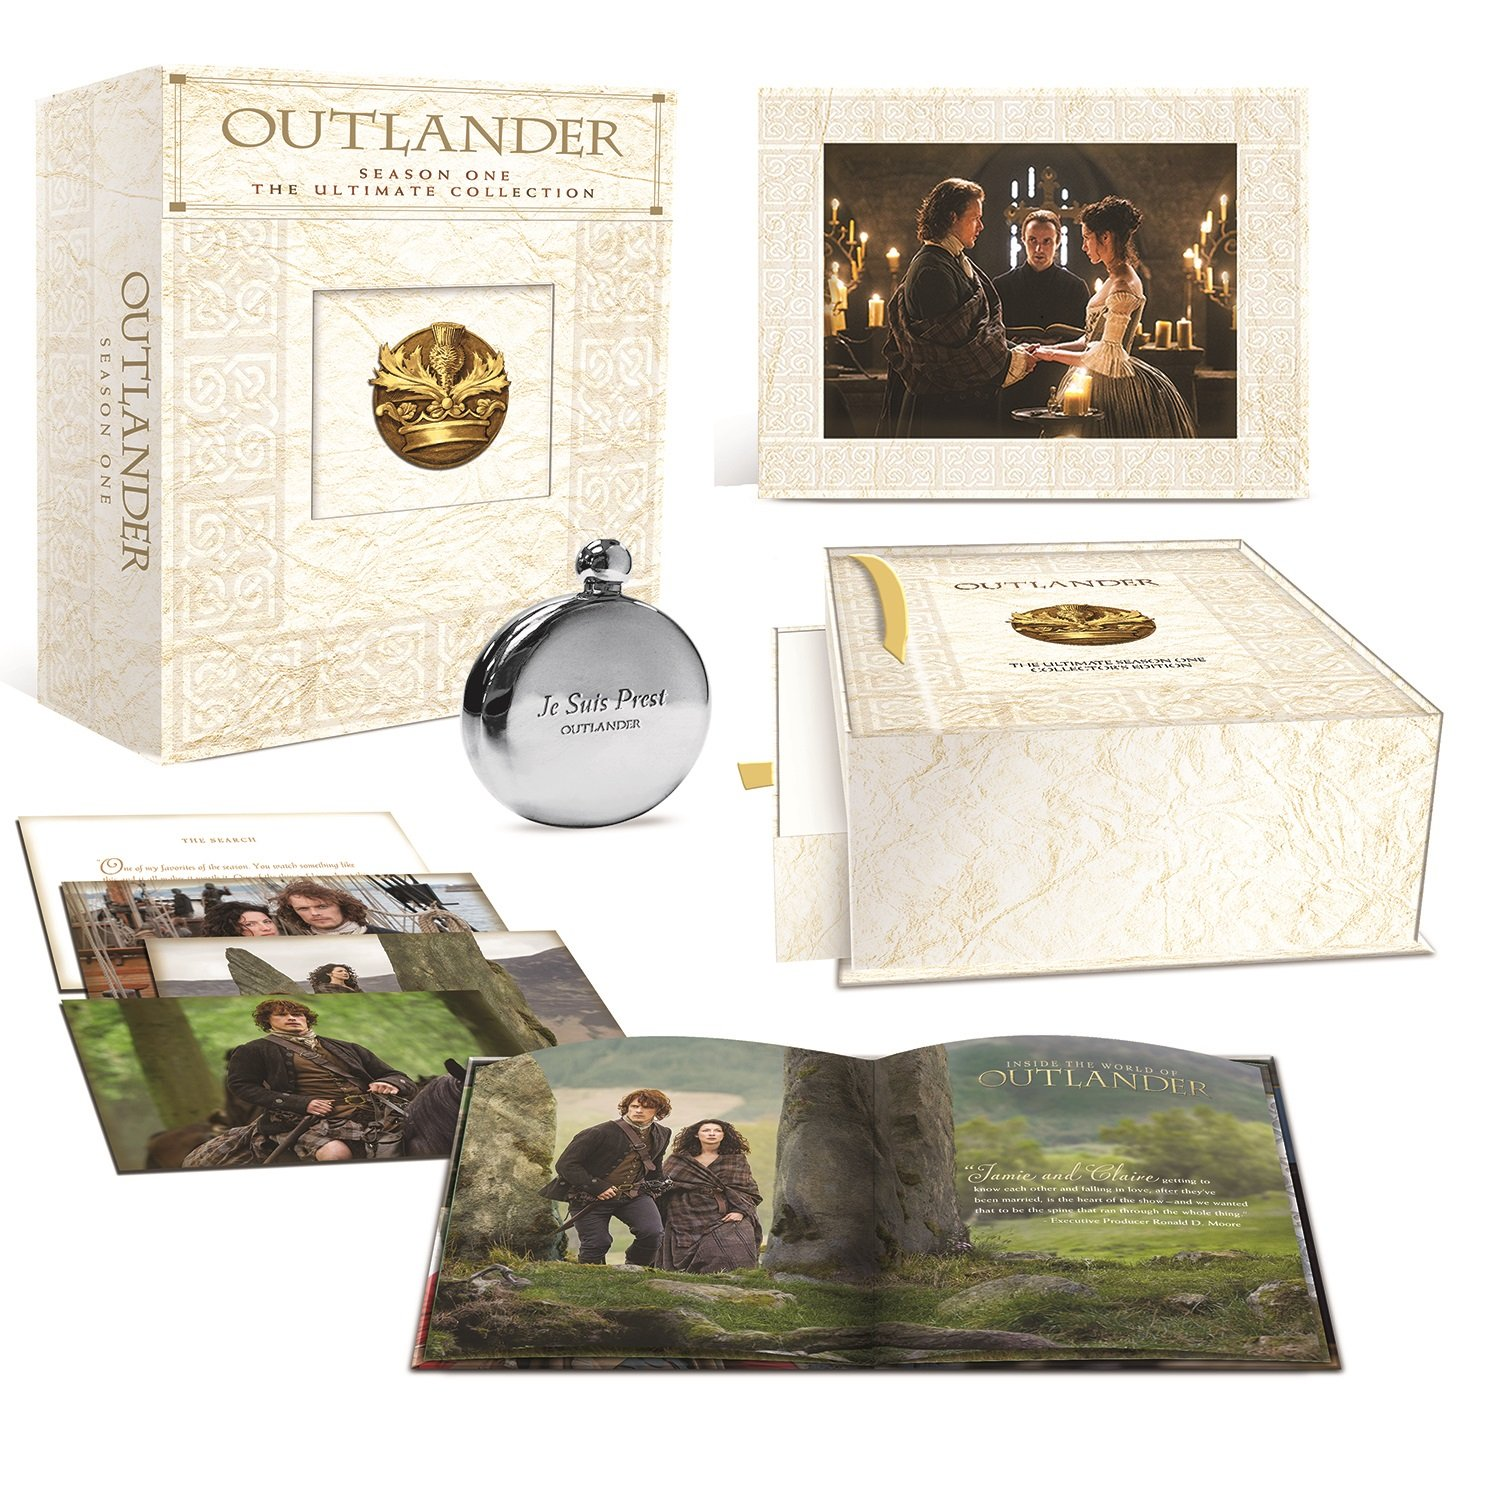 Outlander Season One: The Ultimate Collection